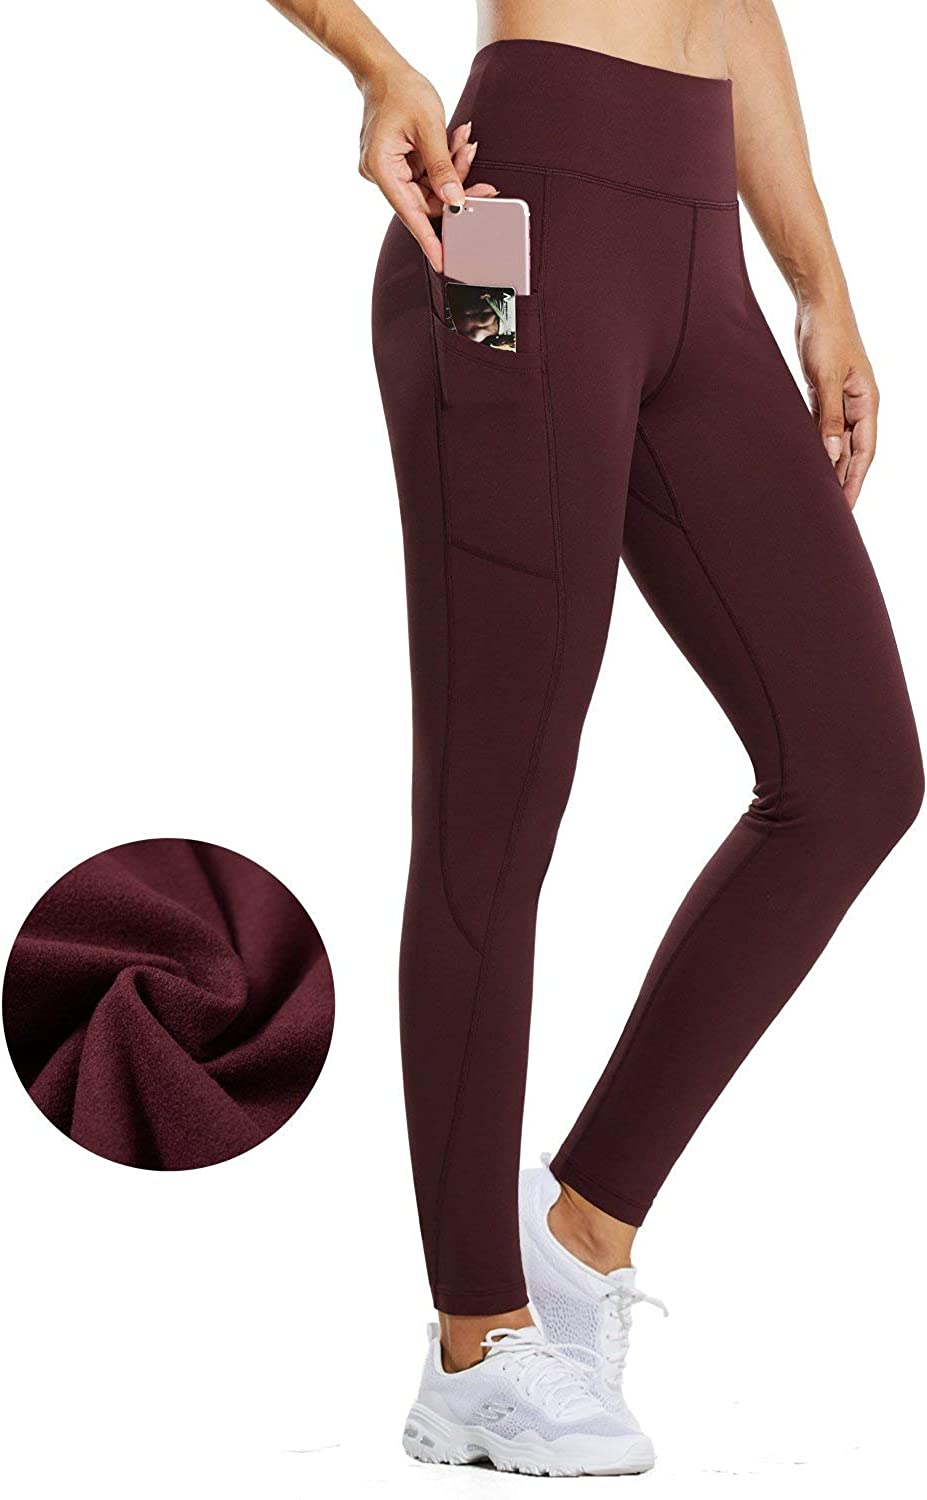 BALEAF Womens Fleece Lined Water Resistant Legging High Waisted Thermal Winter Hiking Running Tights Pockets